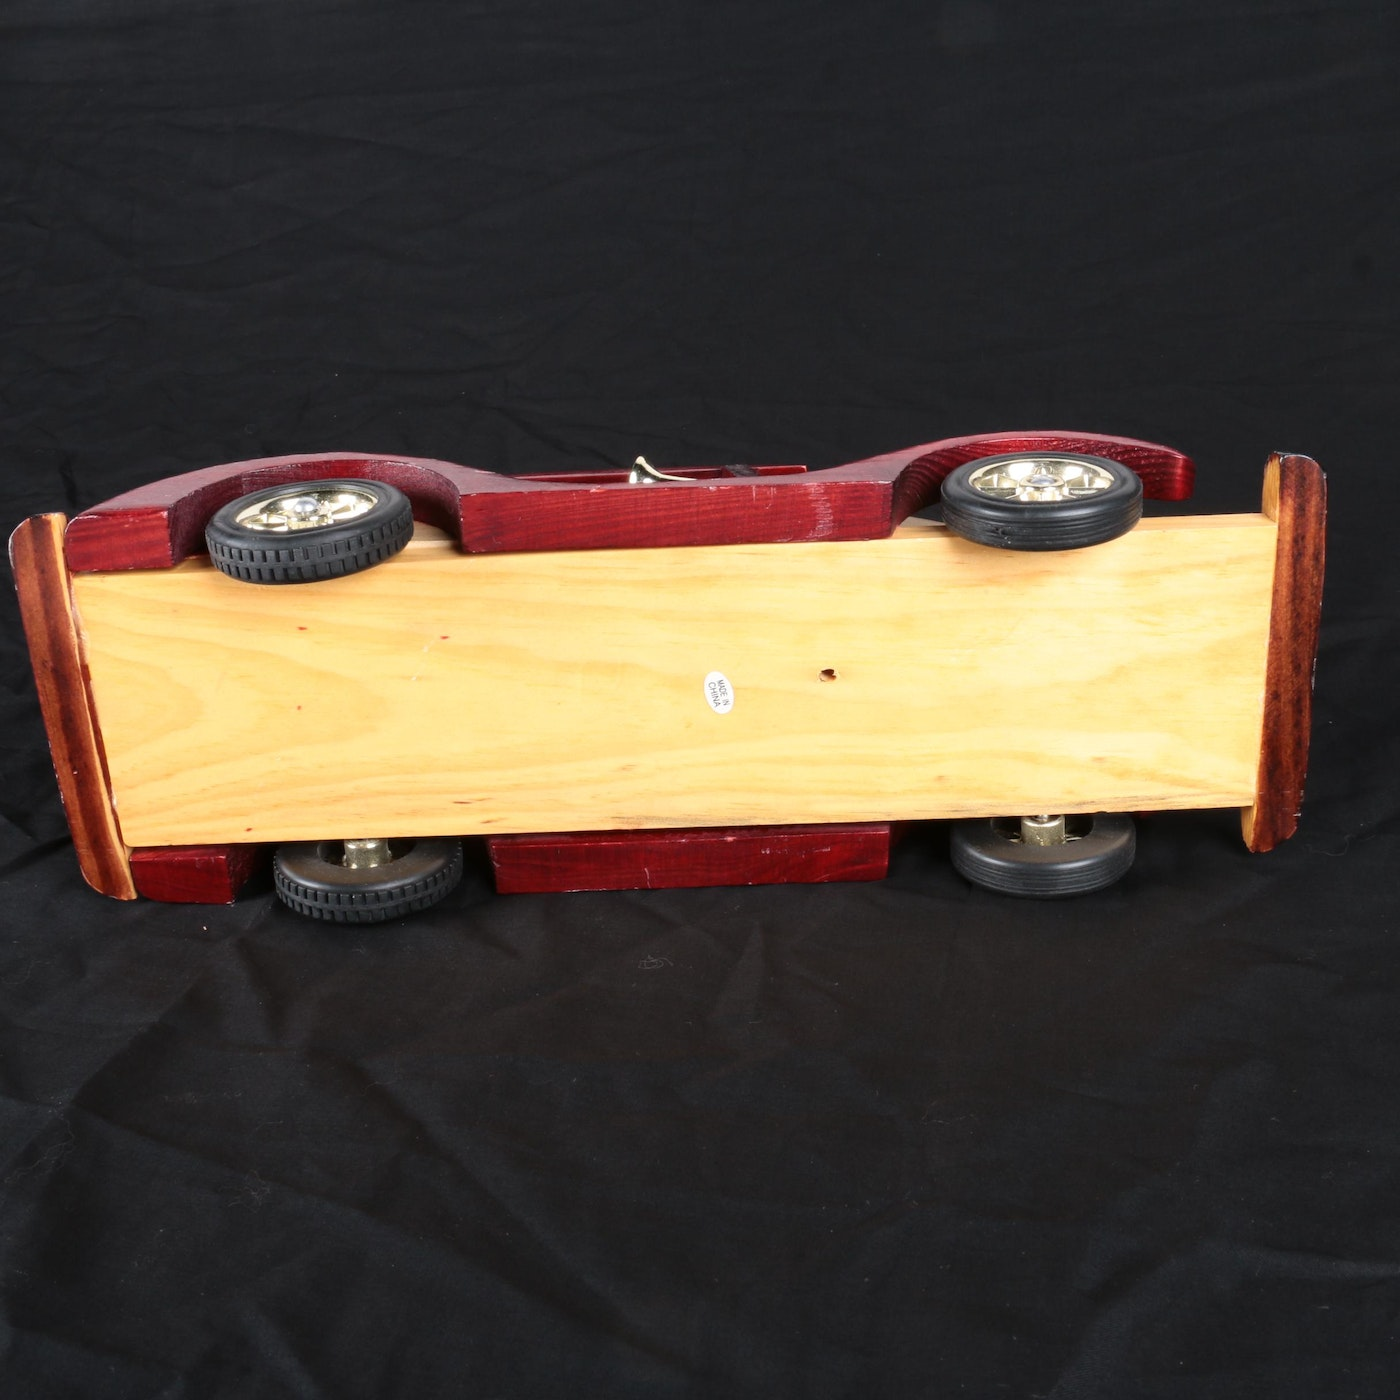 1920 1929 further Television Cabi s With Doors together with 59743132530151109 additionally Portable 7 inch tv LCD as well 7364083 Wooden Car Models And Rolls Royce Theme Radio. on battery operated radio and television